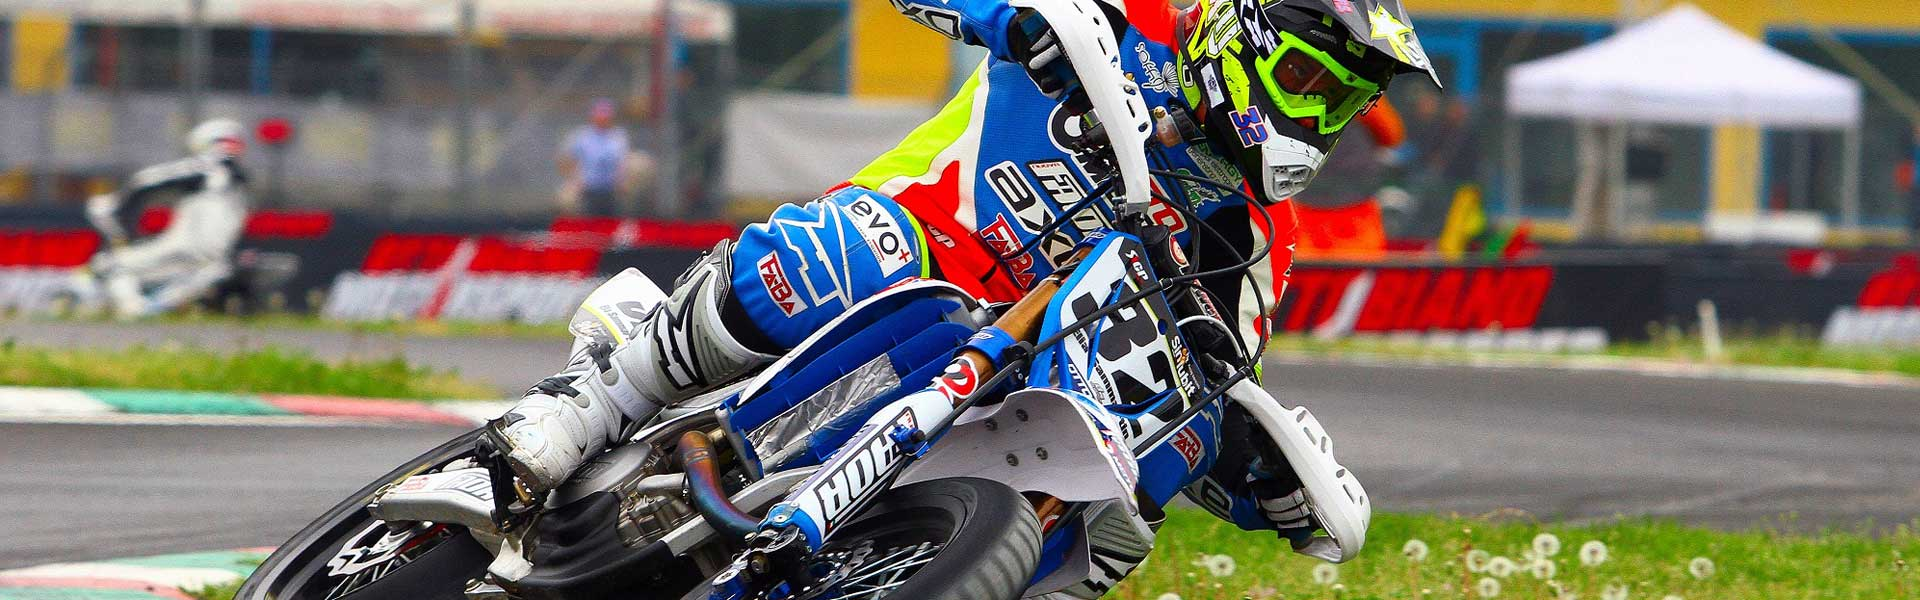 Supermotard bij SMX Racing